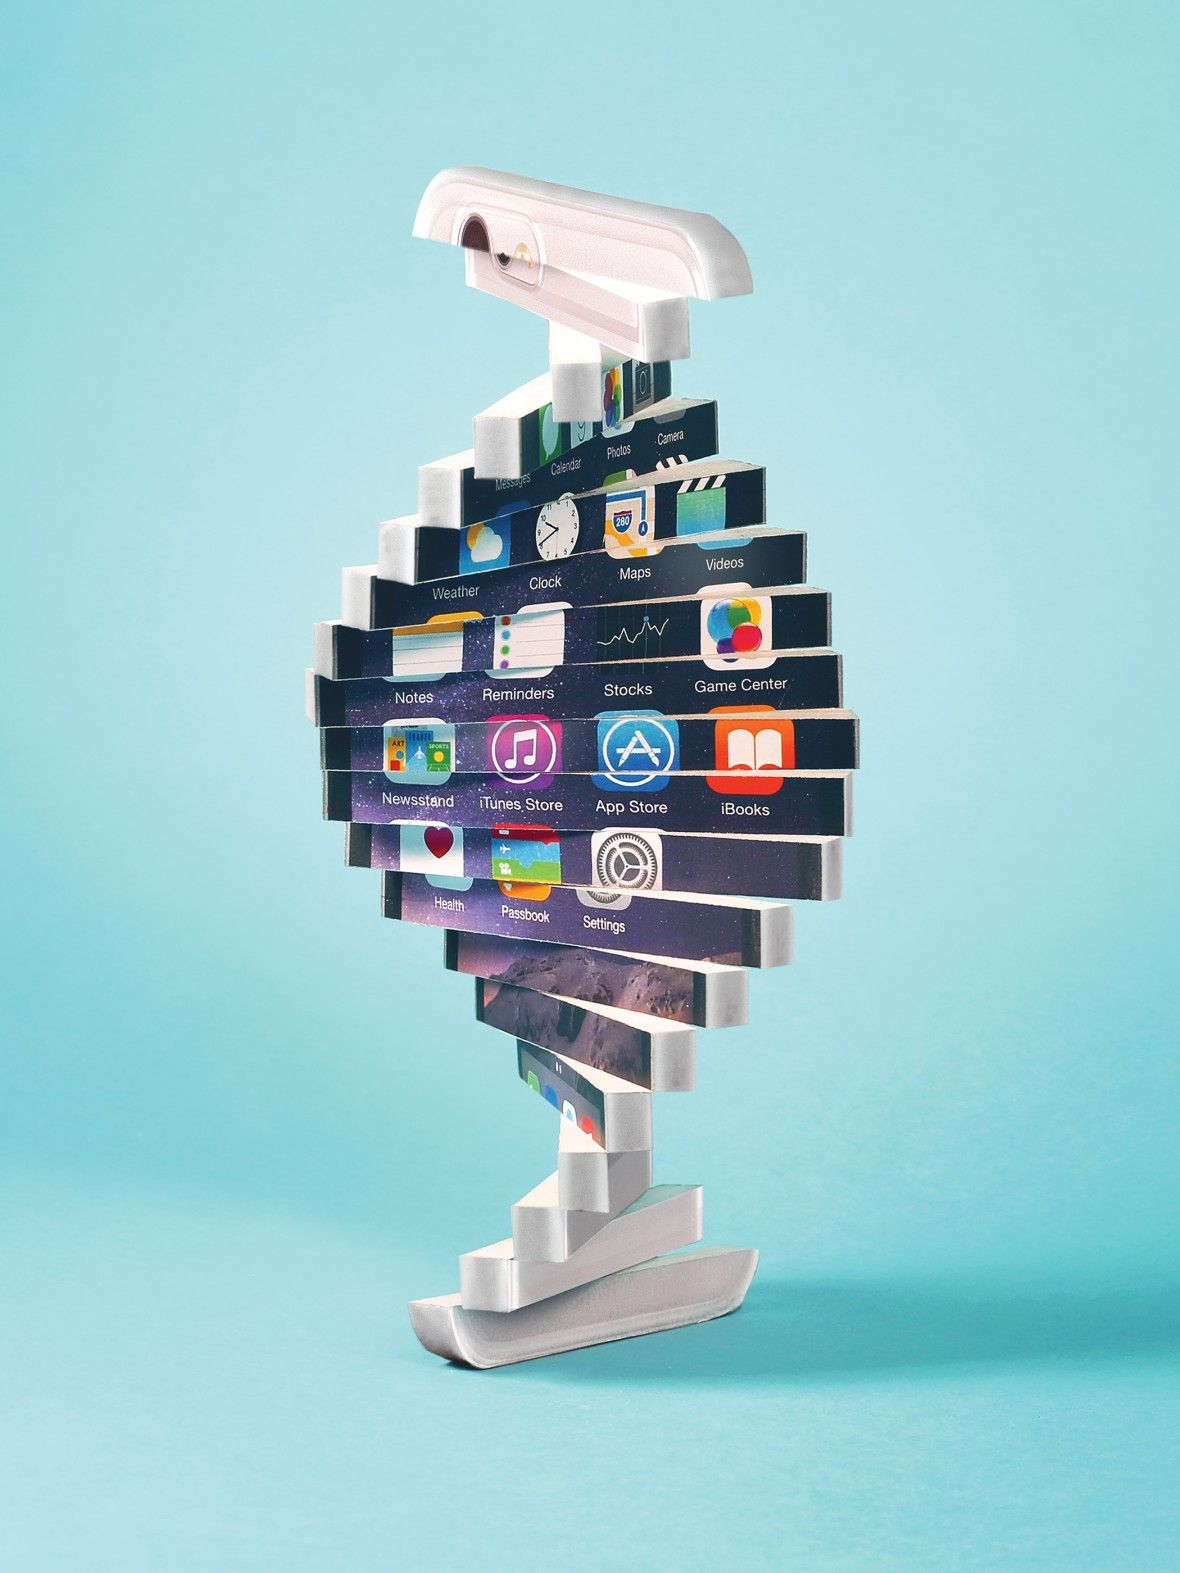 DNA App Store— An online store for information about your genes will make it cheap and easy to learn more about your health risks and predispositions.